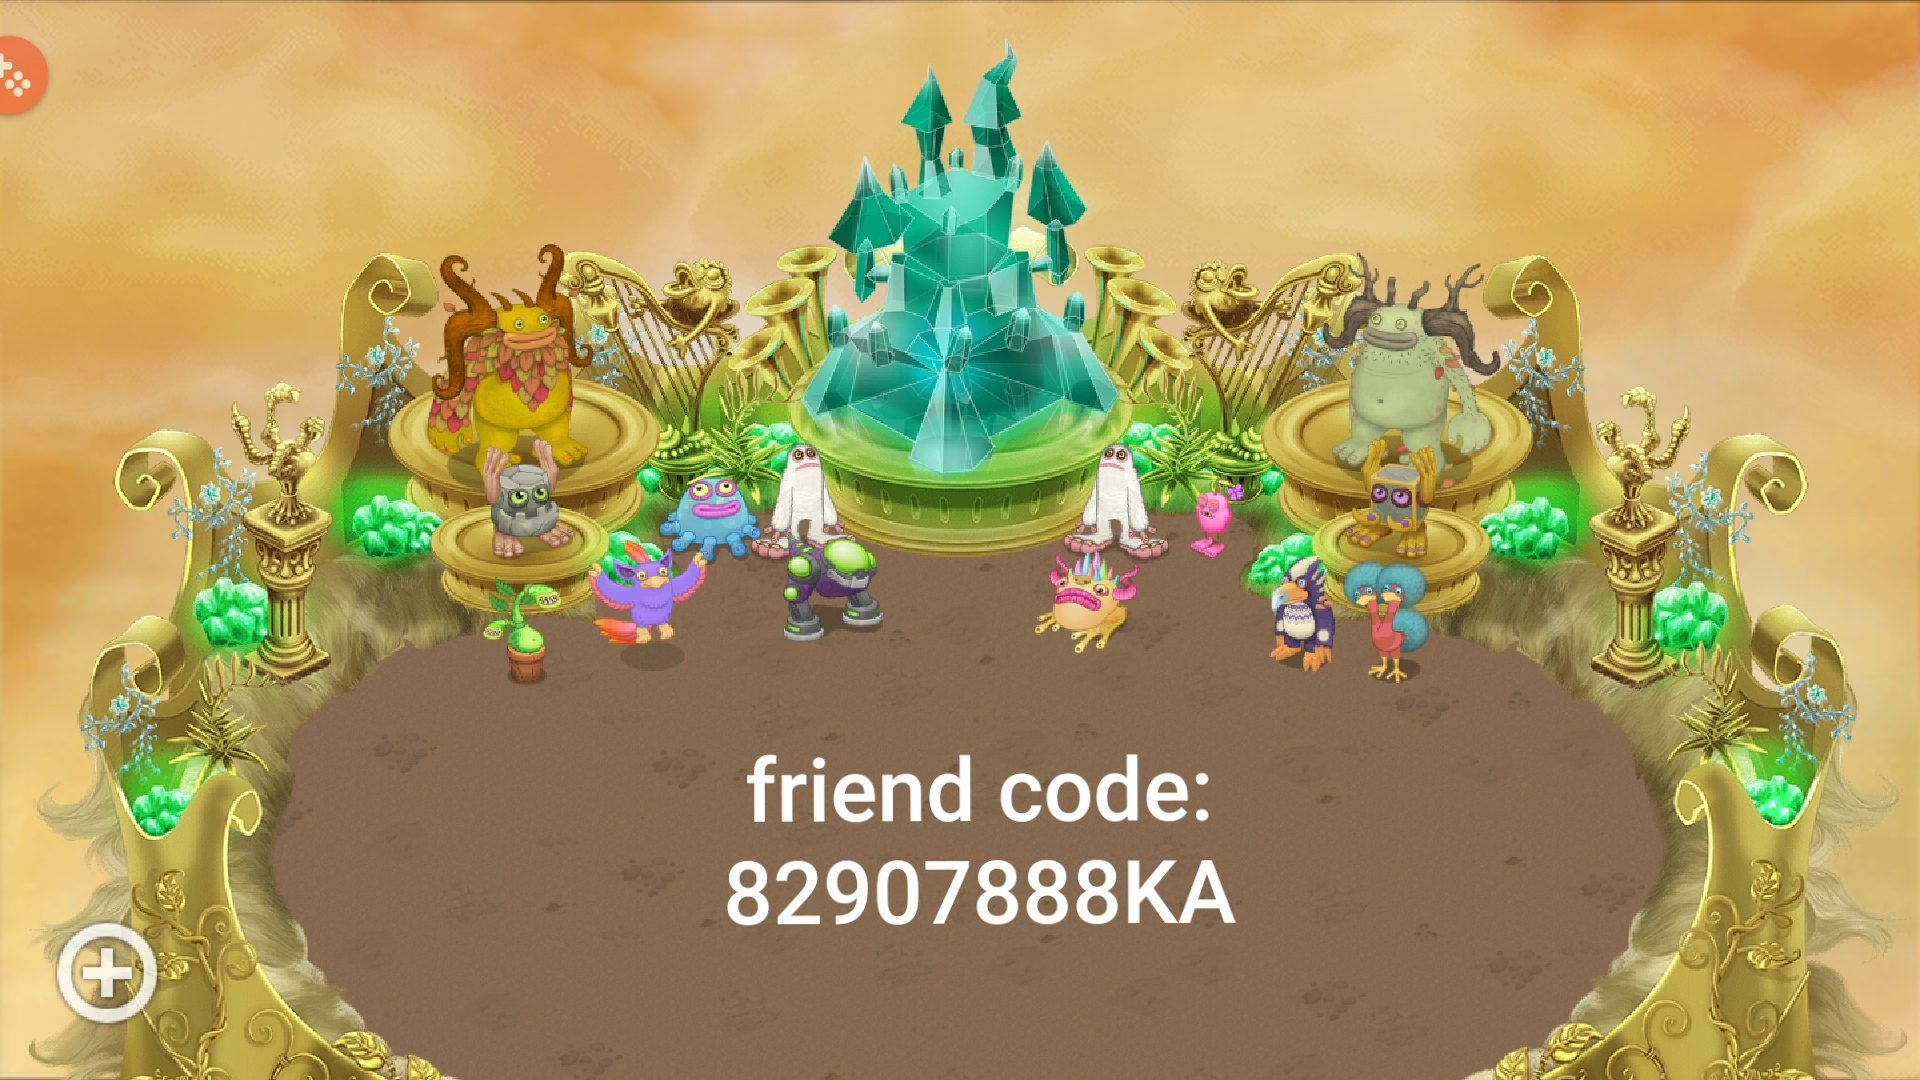 Add me i light torches daily @82907888KA